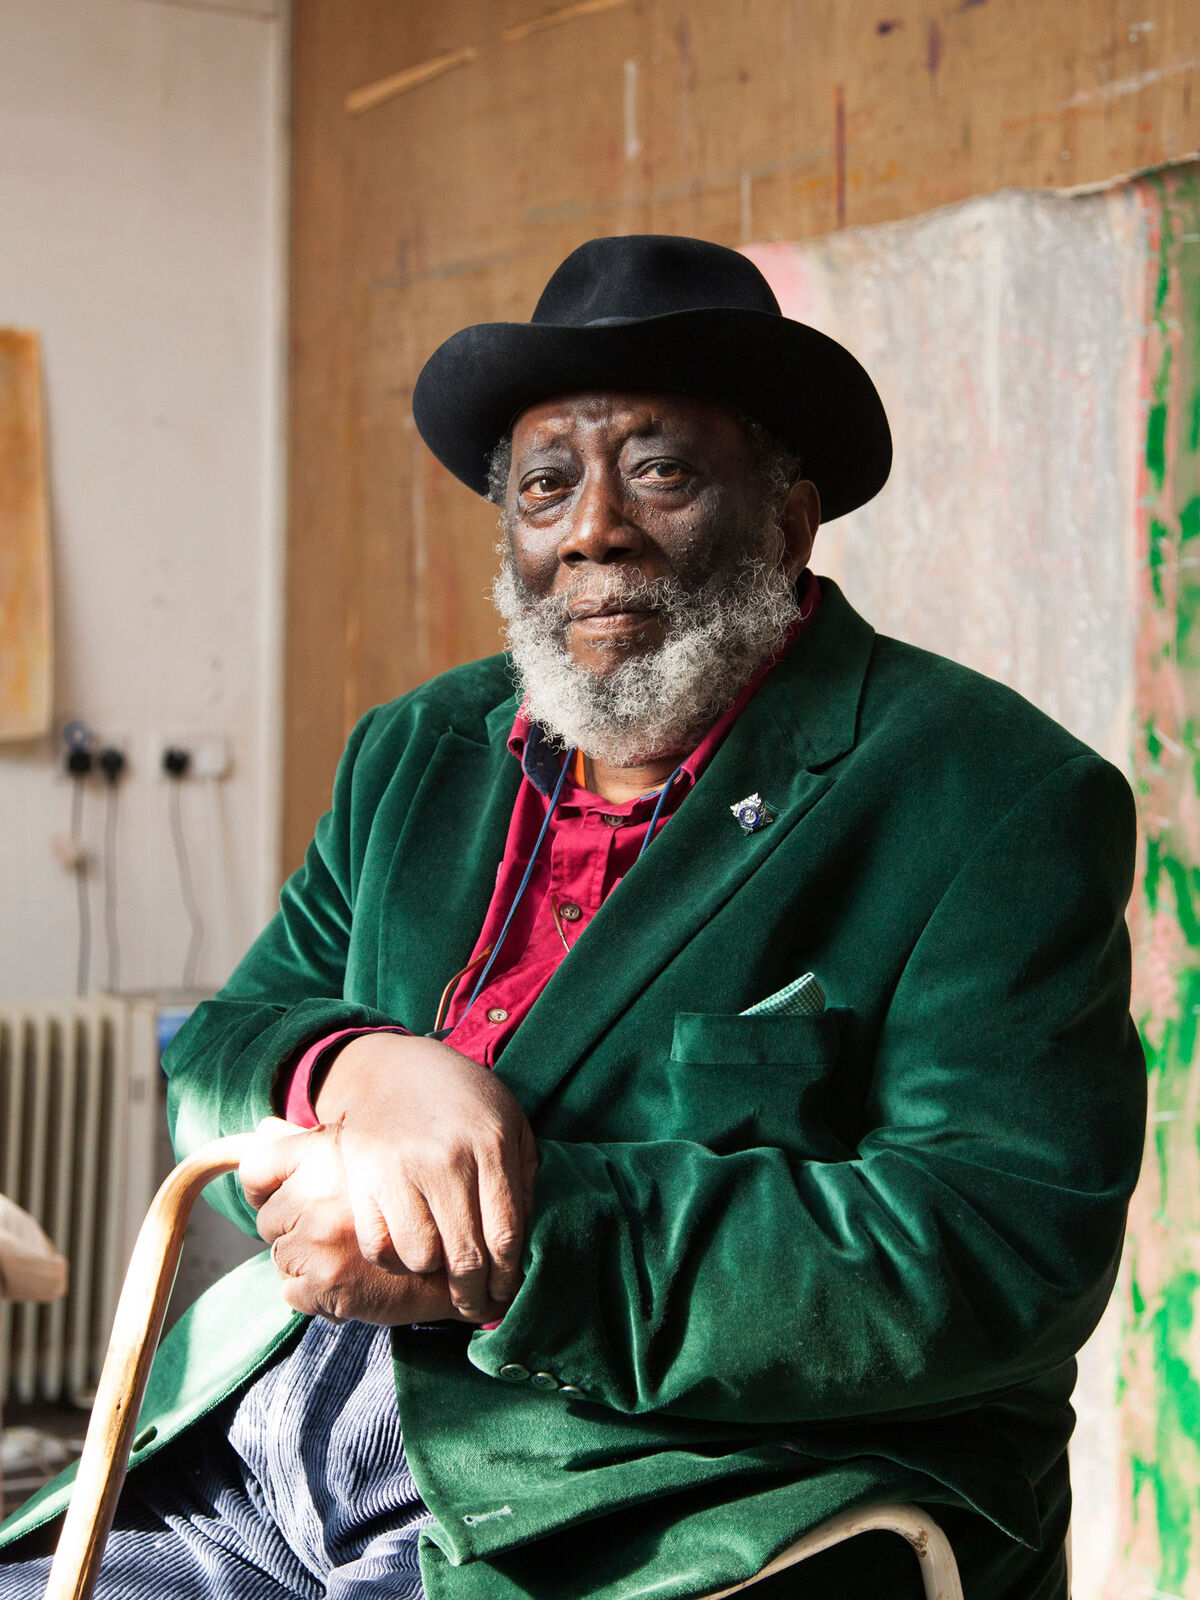 Frank Bowling by Alastair Levy, 2017. © Alastair Levy.